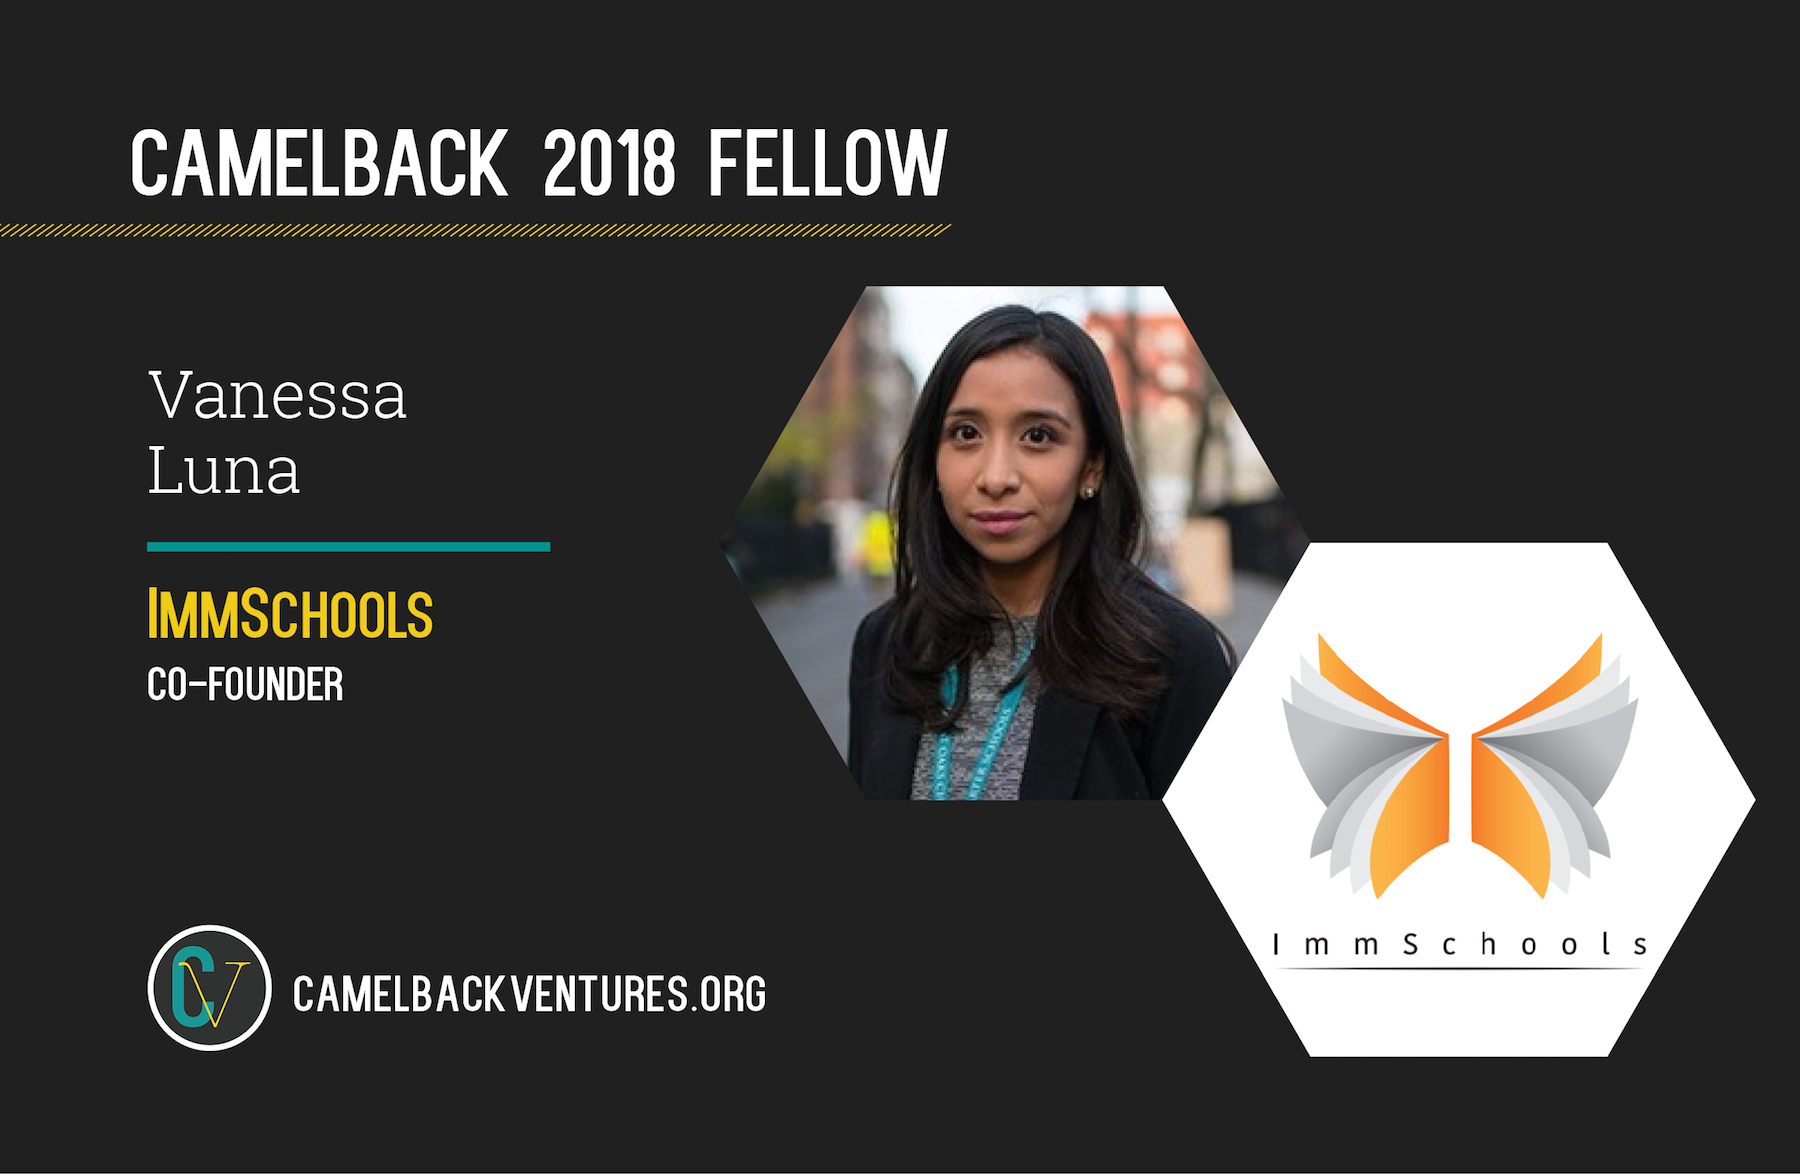 2018camelbackfellows_vanessa.jpg